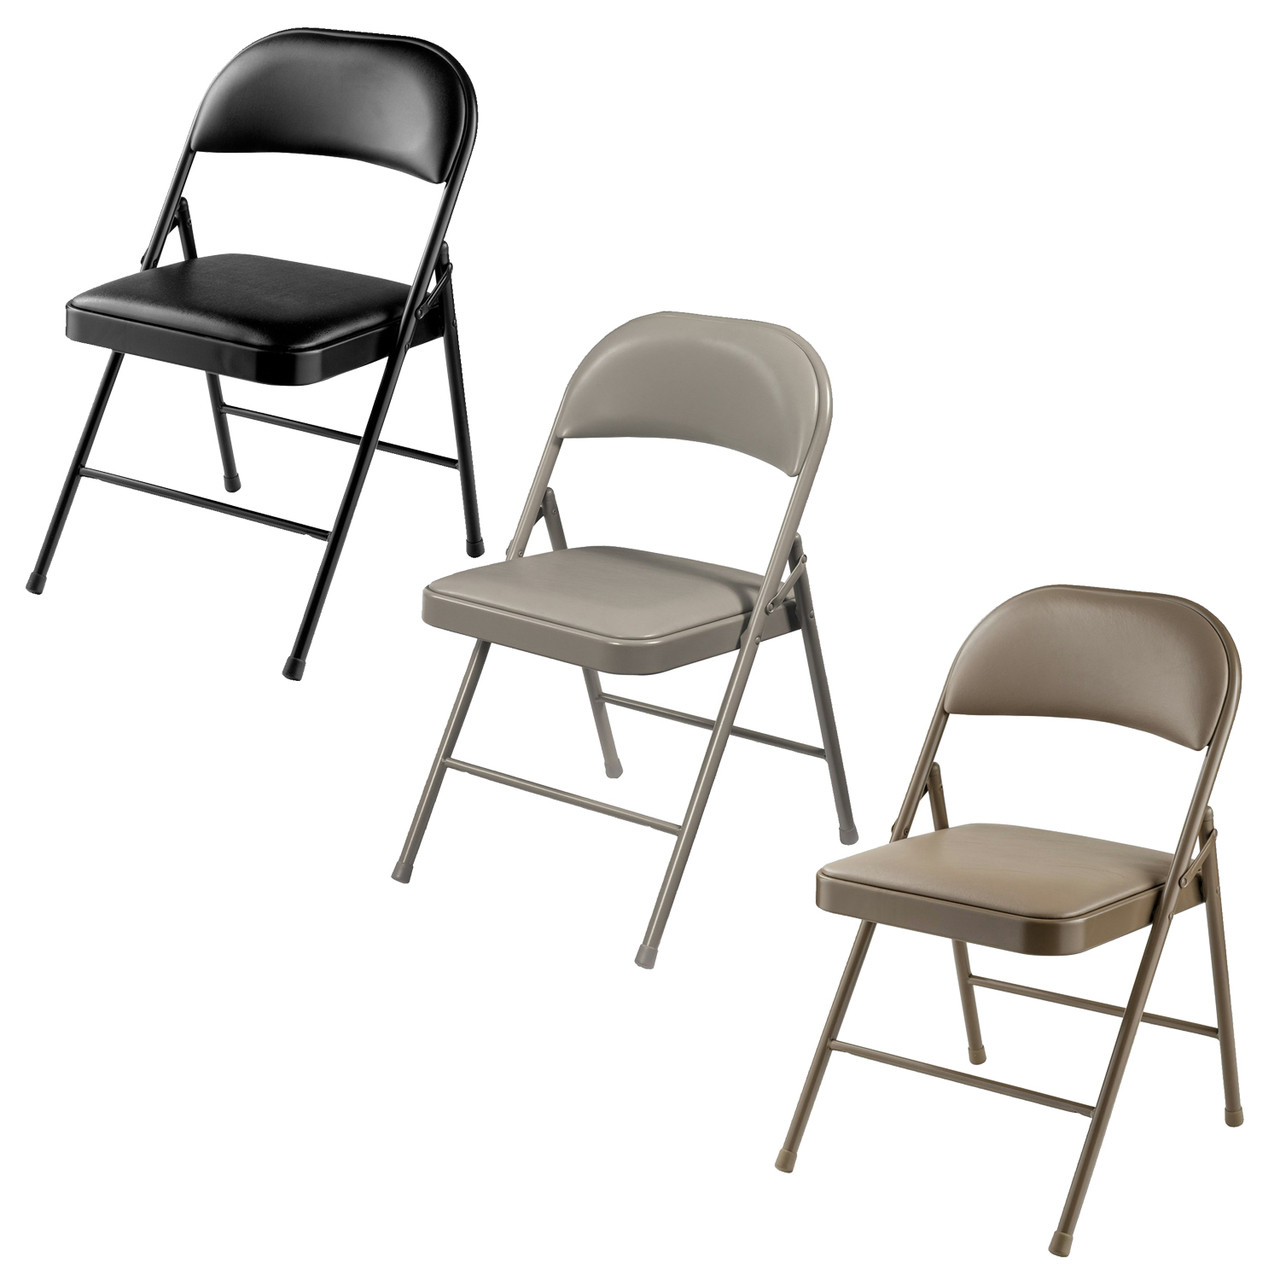 Chairs Folding Commercialine Vinyl Padded Folding Chair By National Public Seating